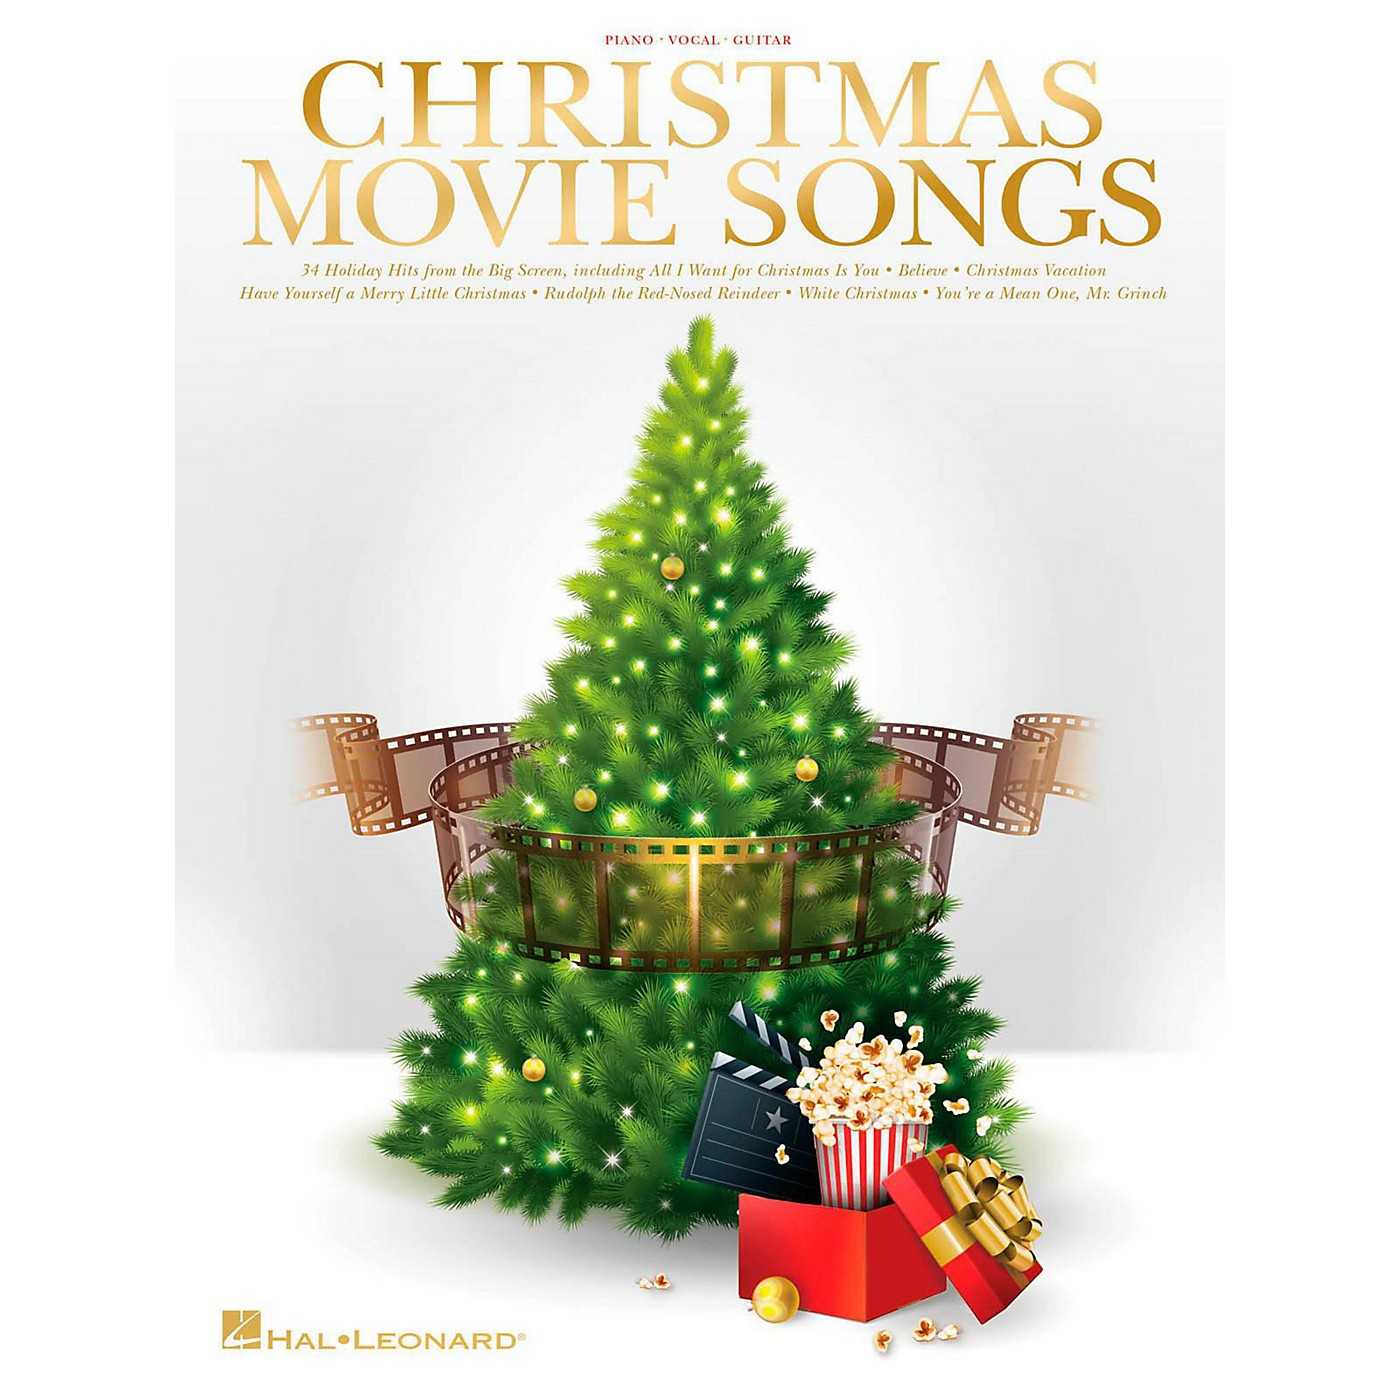 Hal Leonard Christmas Movie Songs for piano/vocal/guitar thumbnail